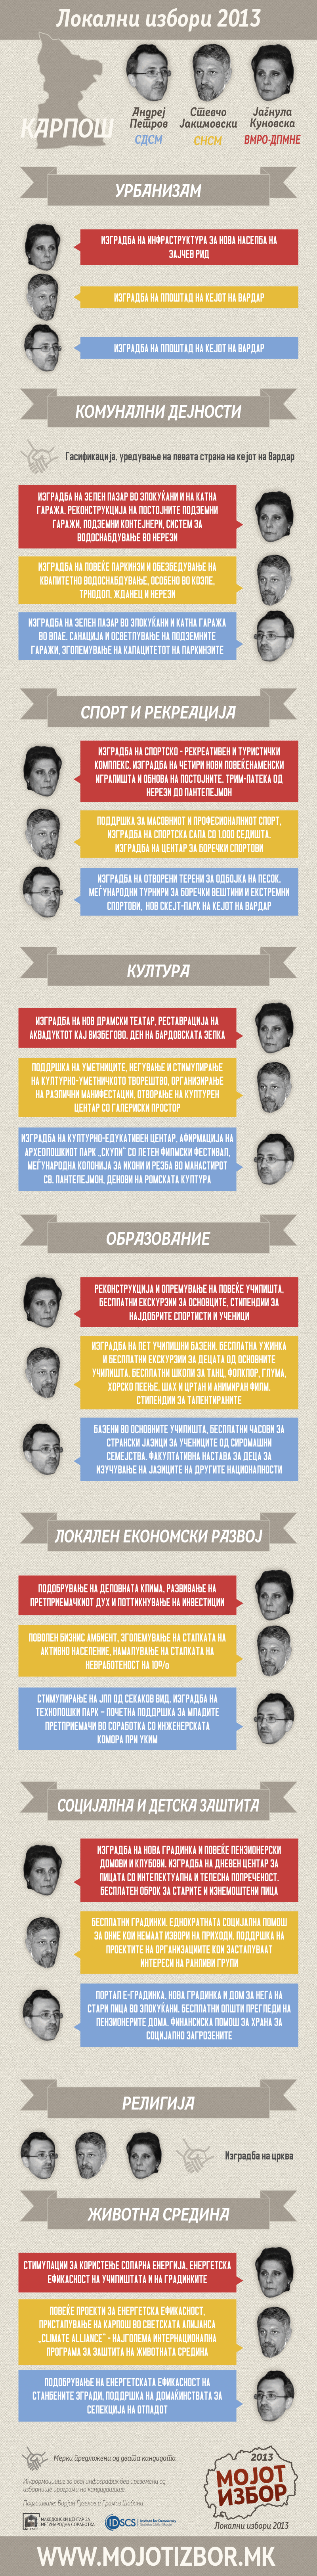 karposh-mojot-izbor-infographic-2013